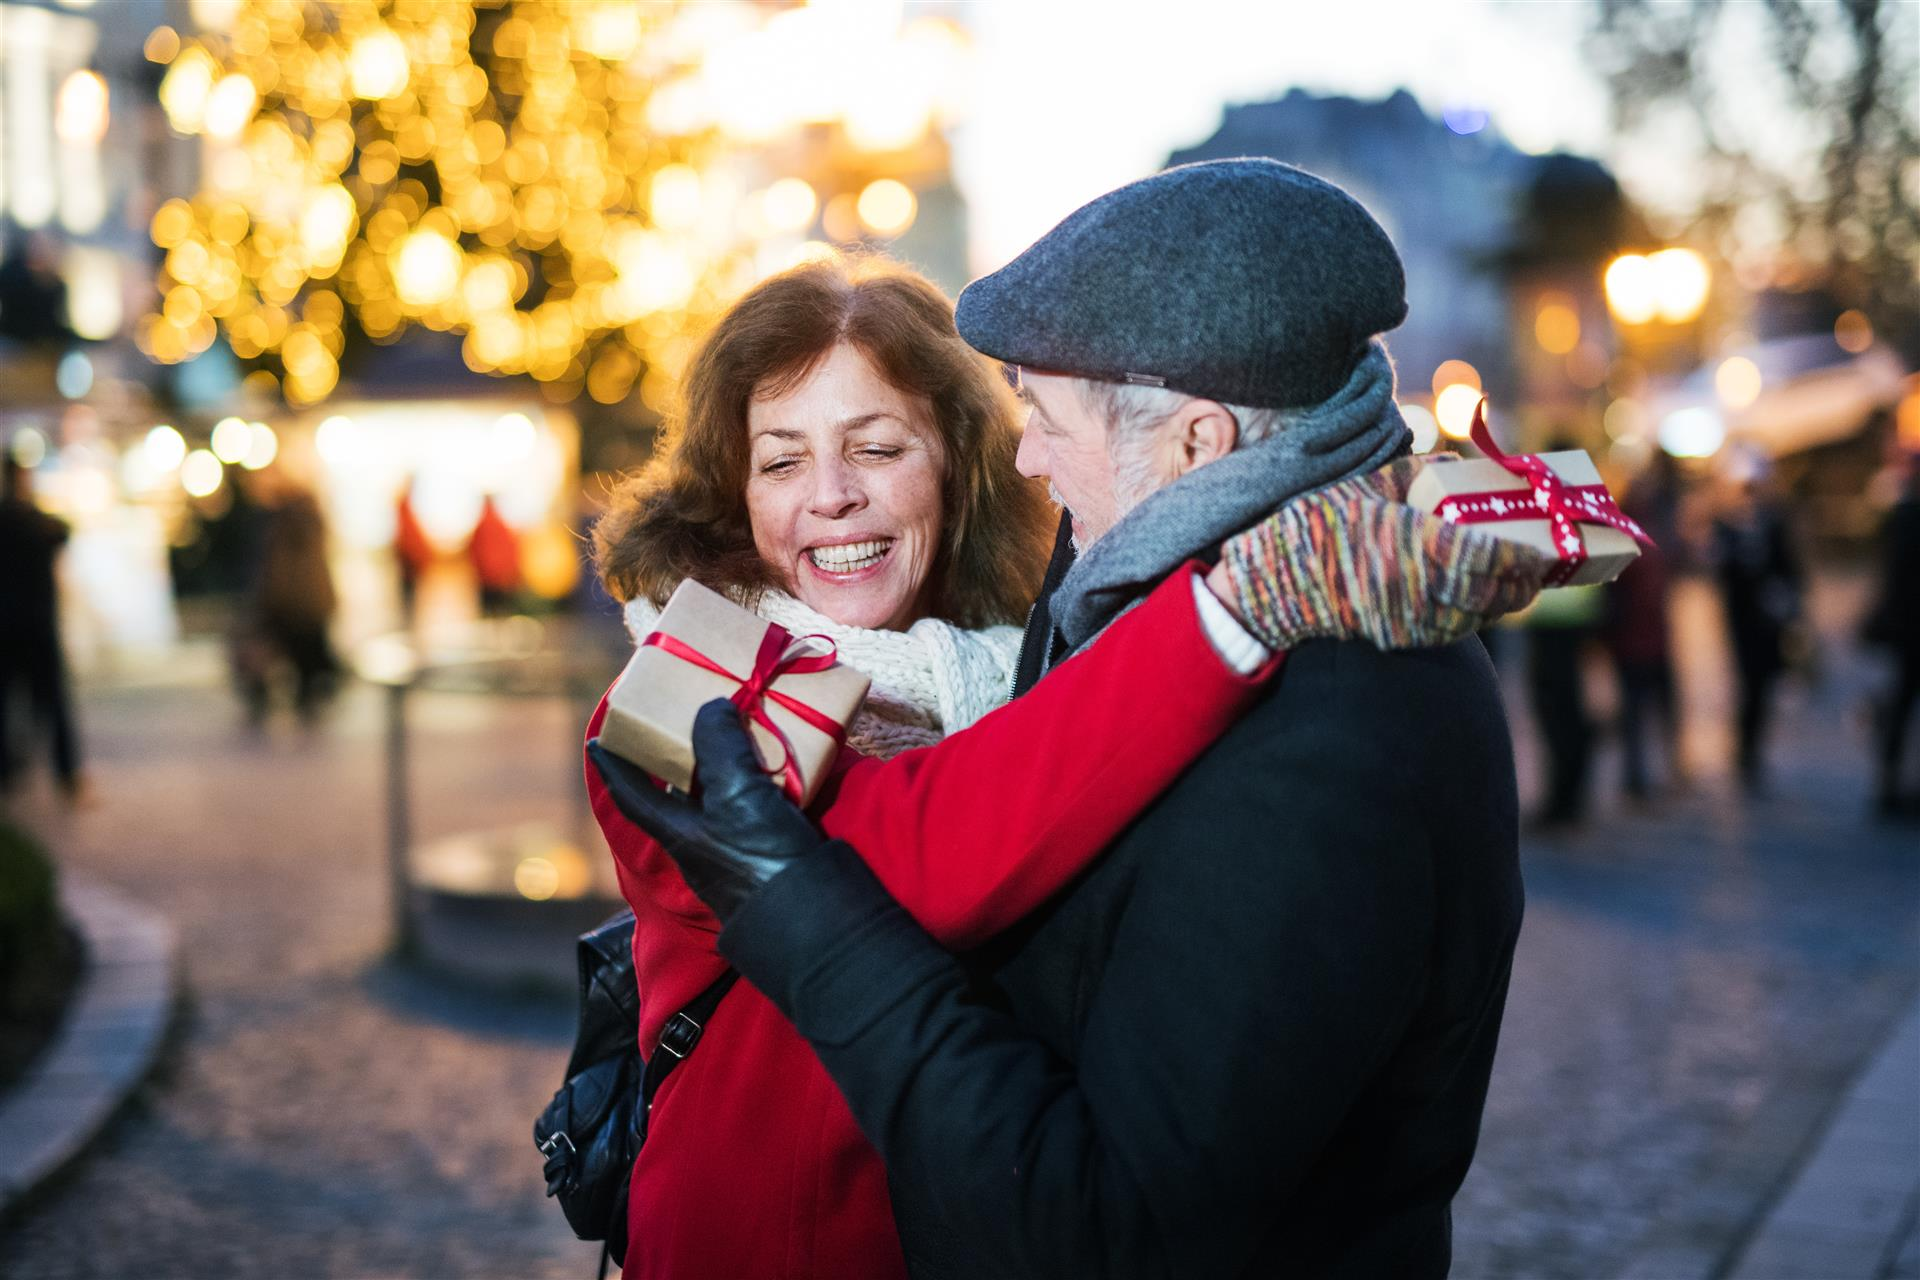 Activities to Fight Loneliness this Holiday Season